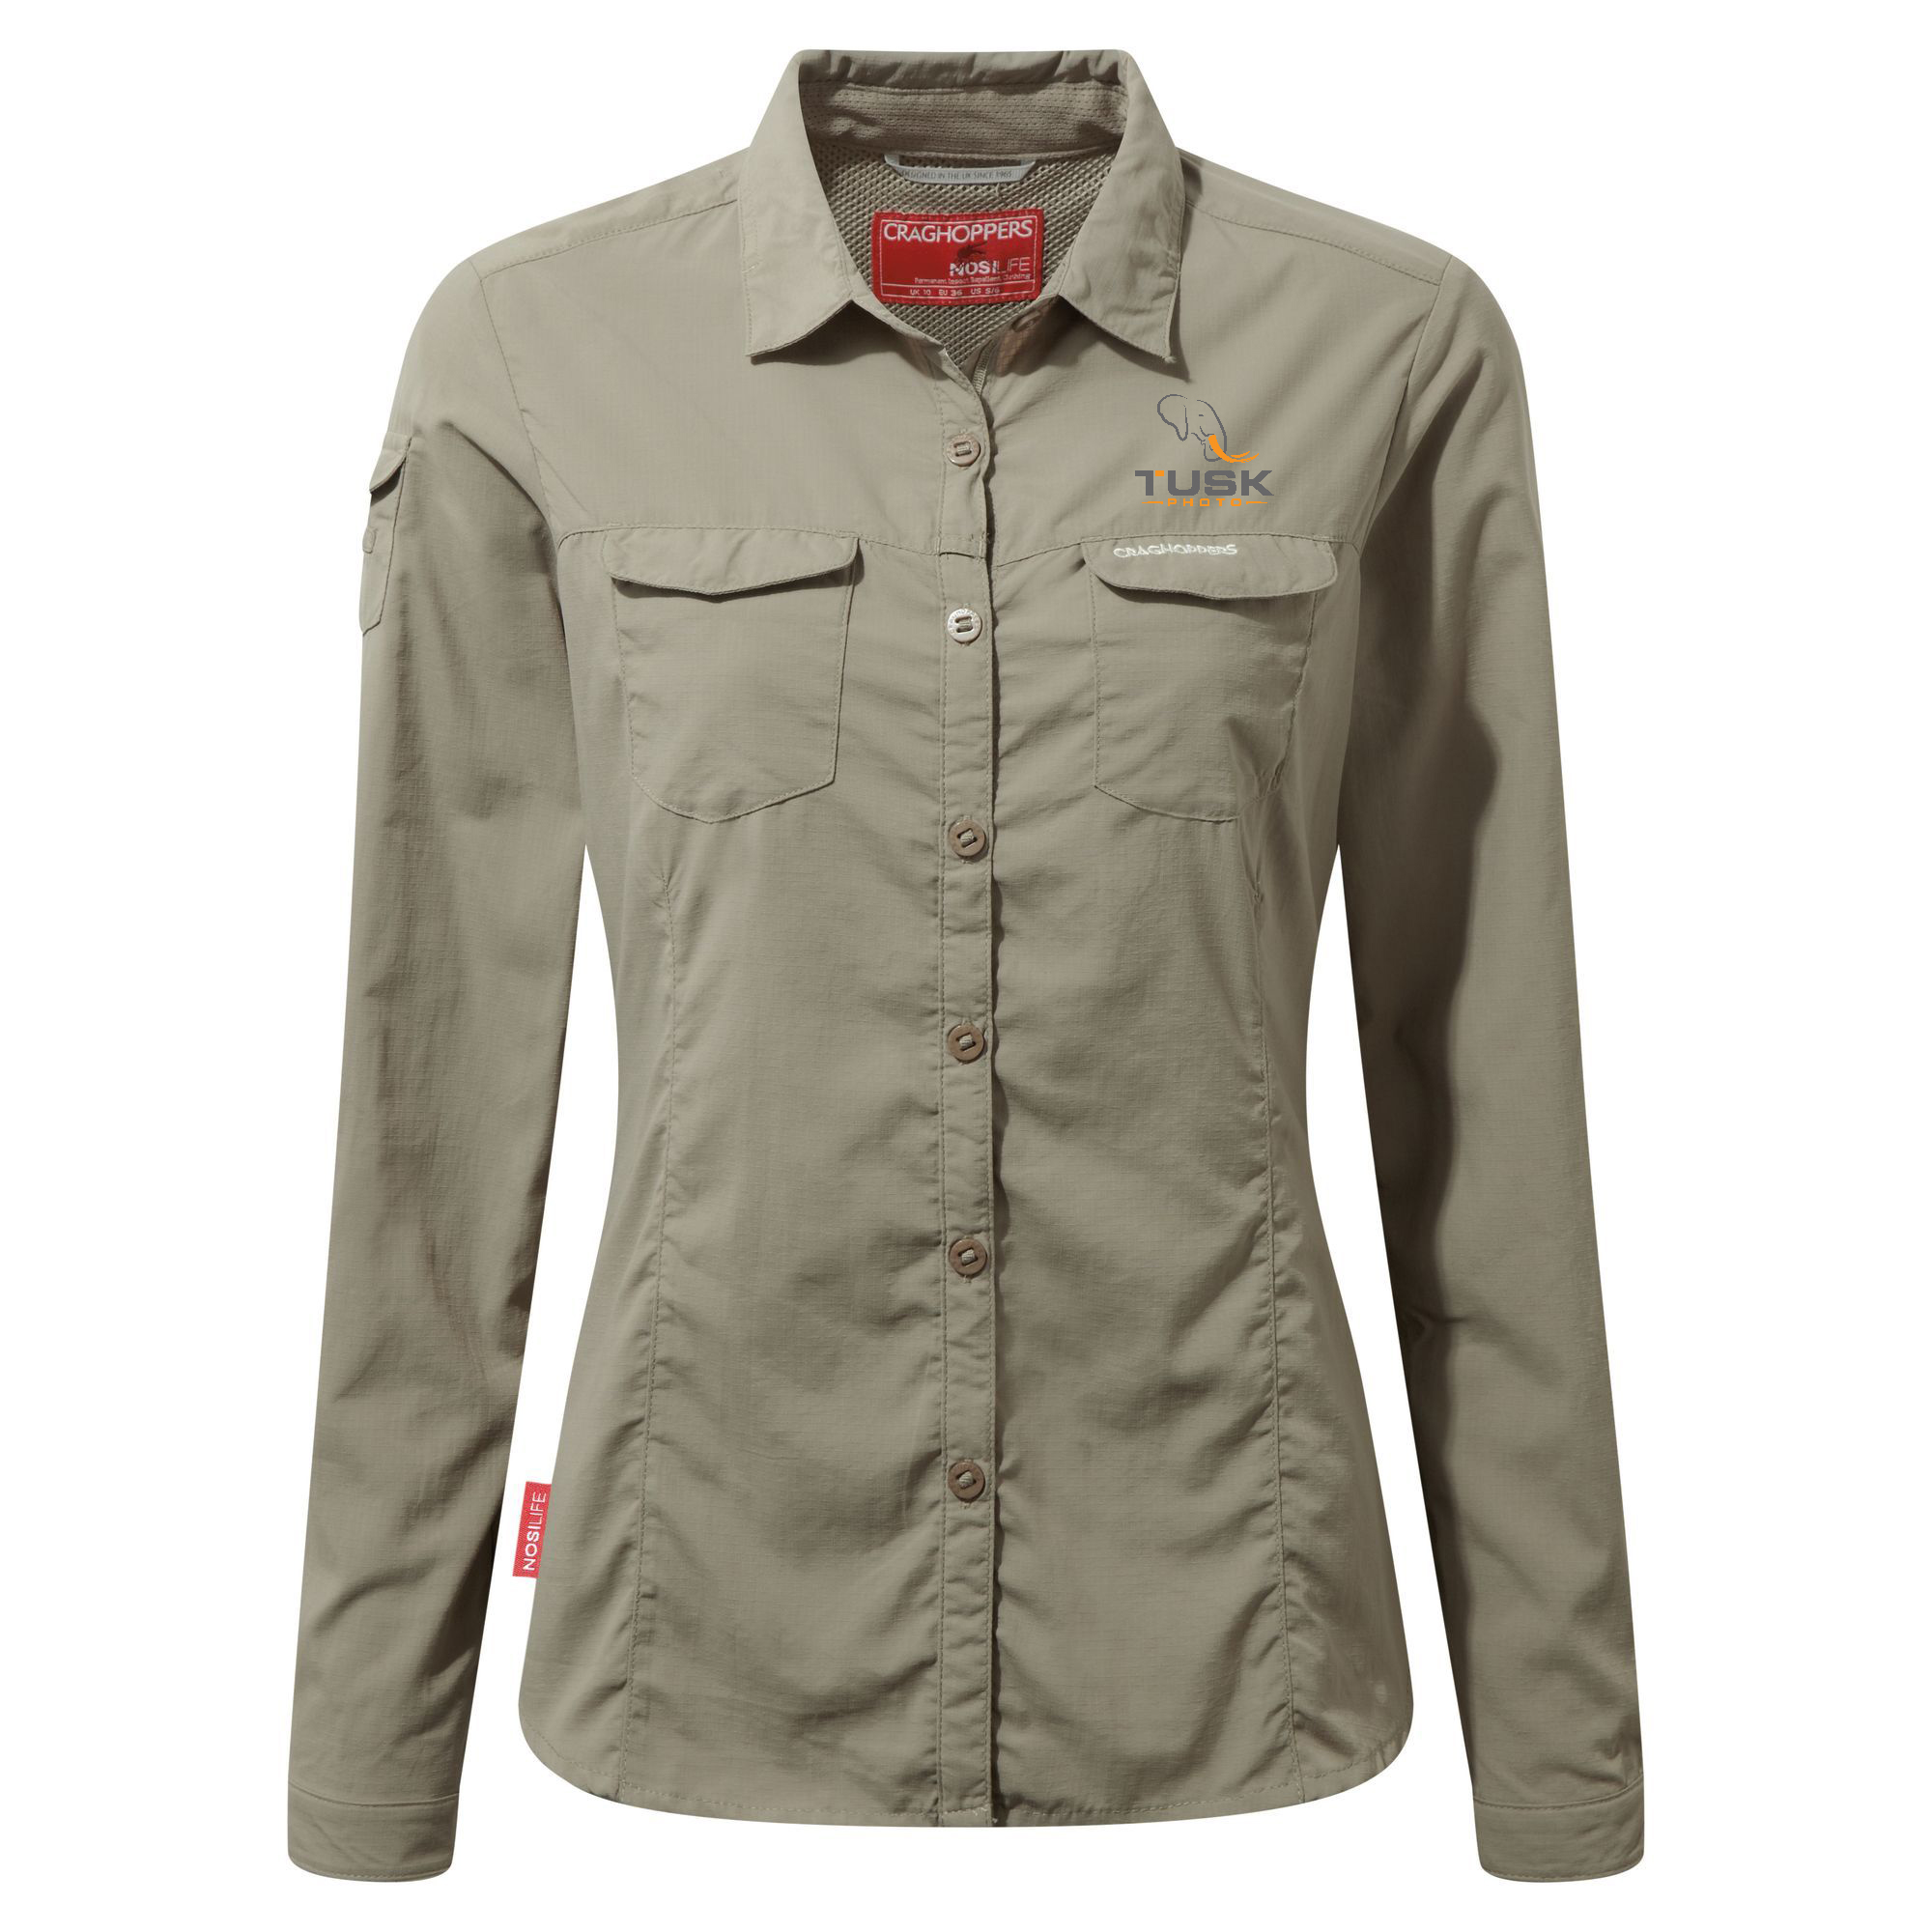 18178086 LADIES NOSILIFE ADVENTURE LONG-SLEEVED SHIRT | Tusk Photo